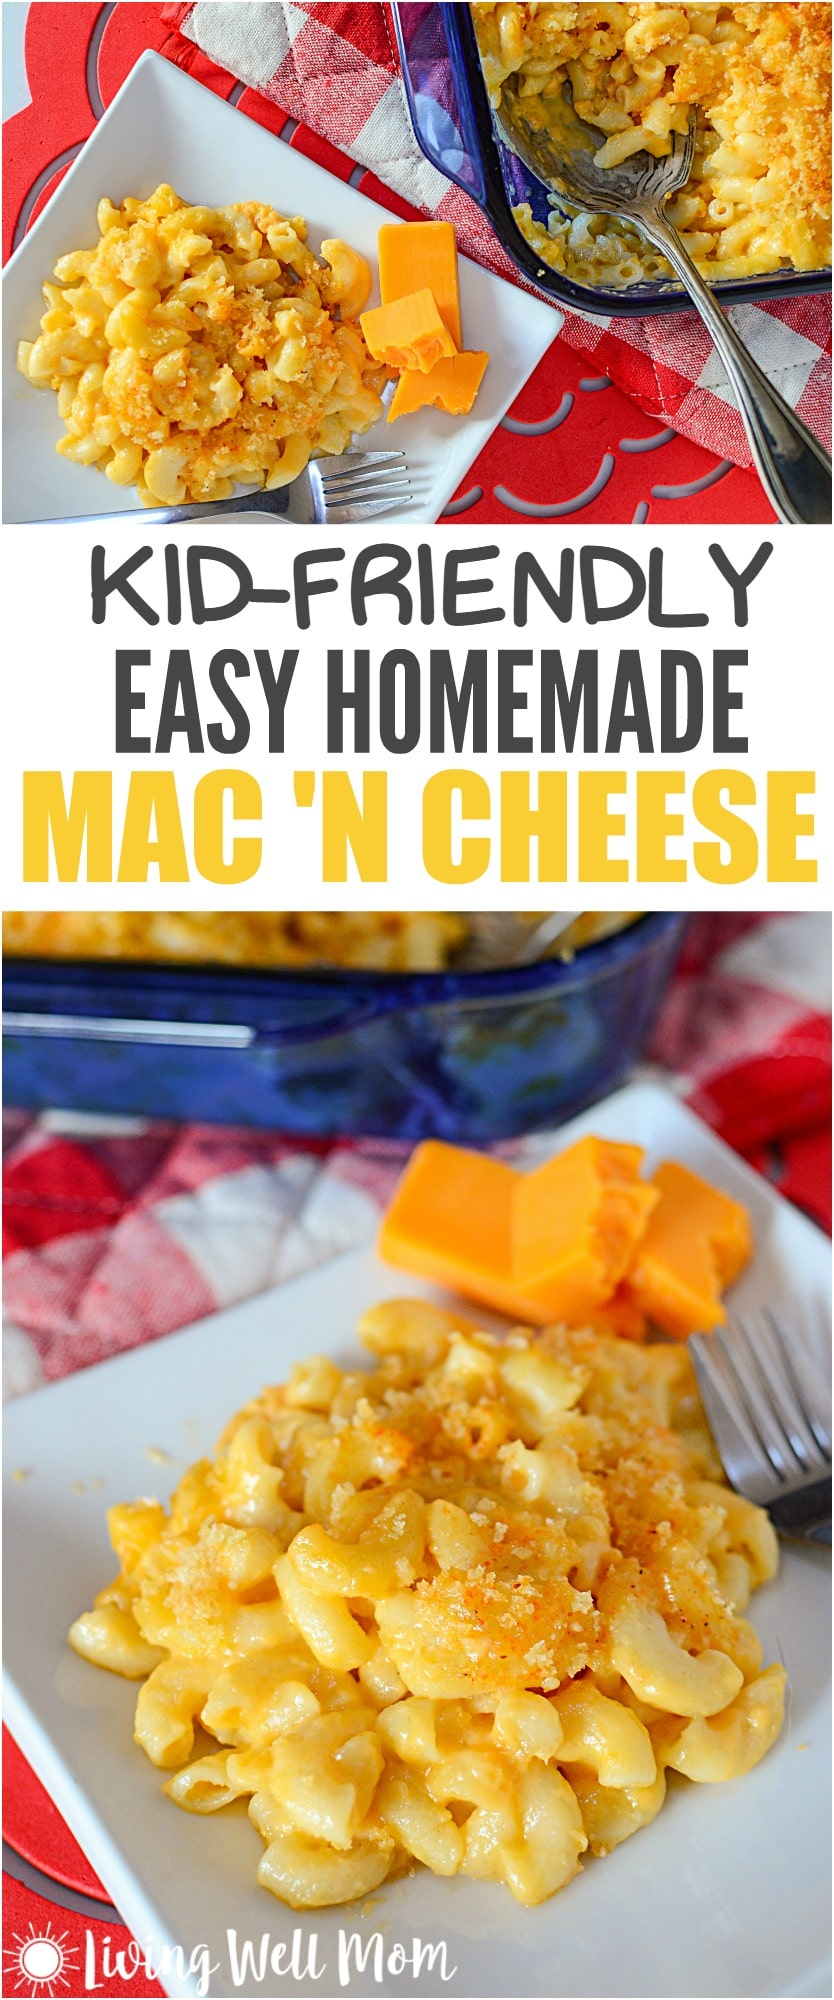 kid-friendly easy homemade mac and cheese